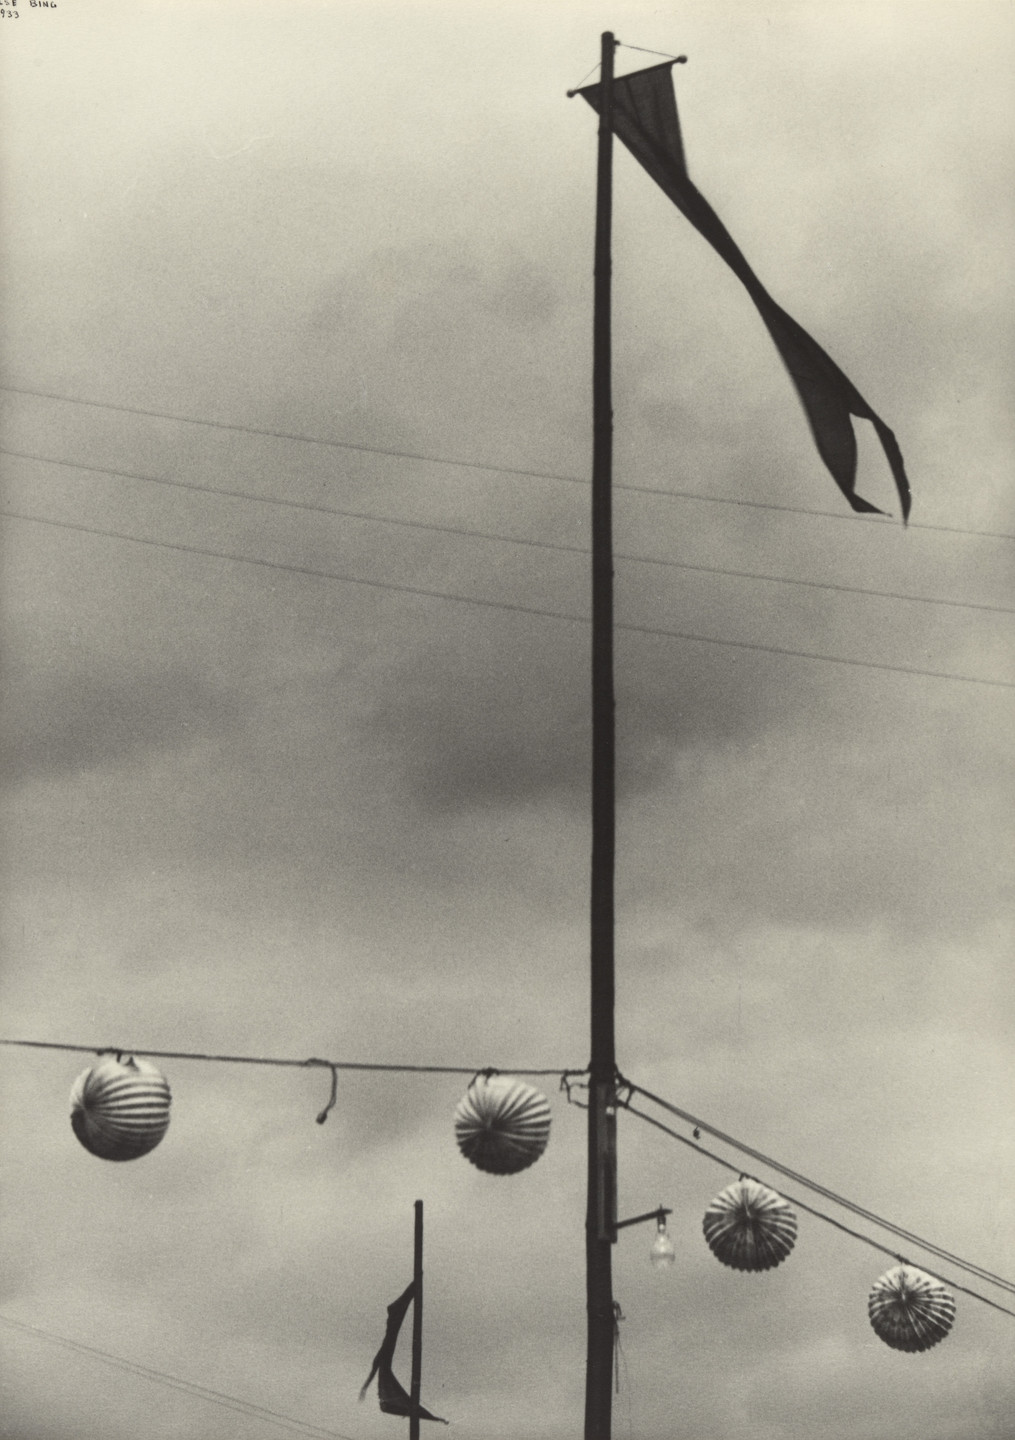 Ilse Bing. Bastille Day, Paris. 1933